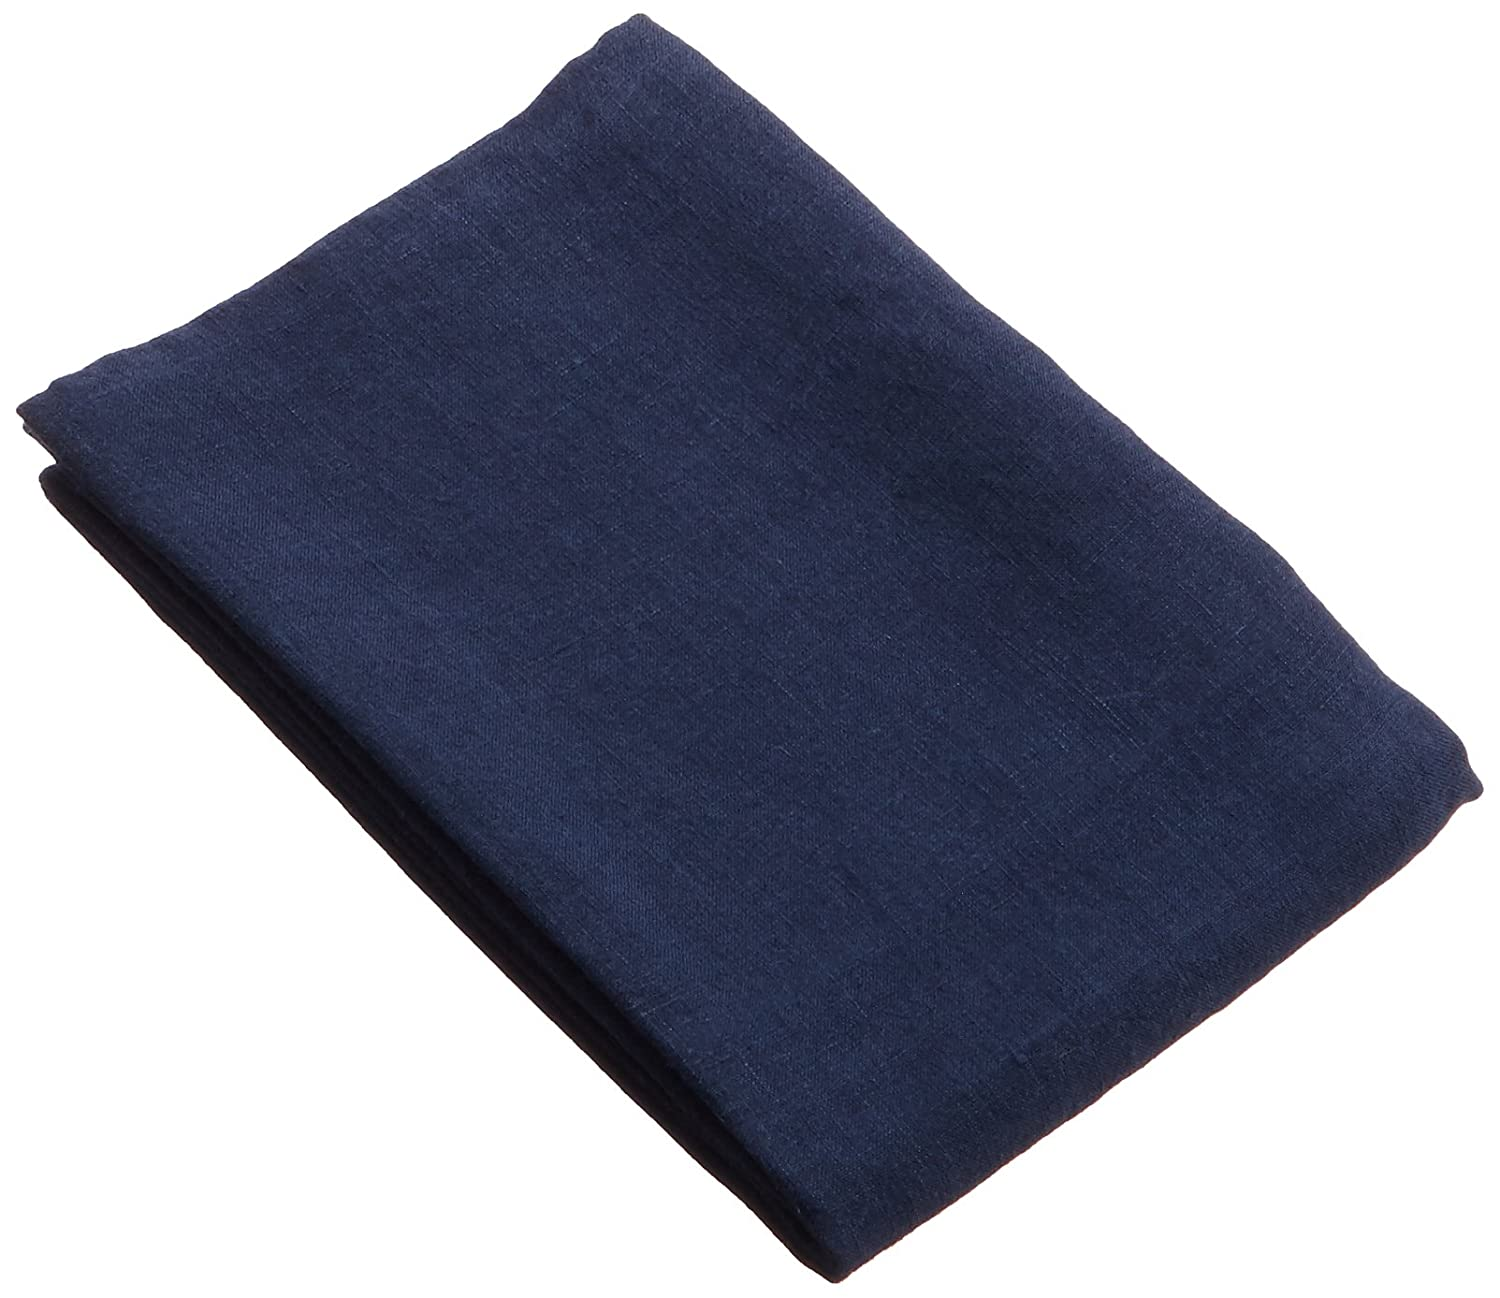 LinenMe Blue Stone Washed Bed Linen Pillow Case 20x36 Inch 20 x 36